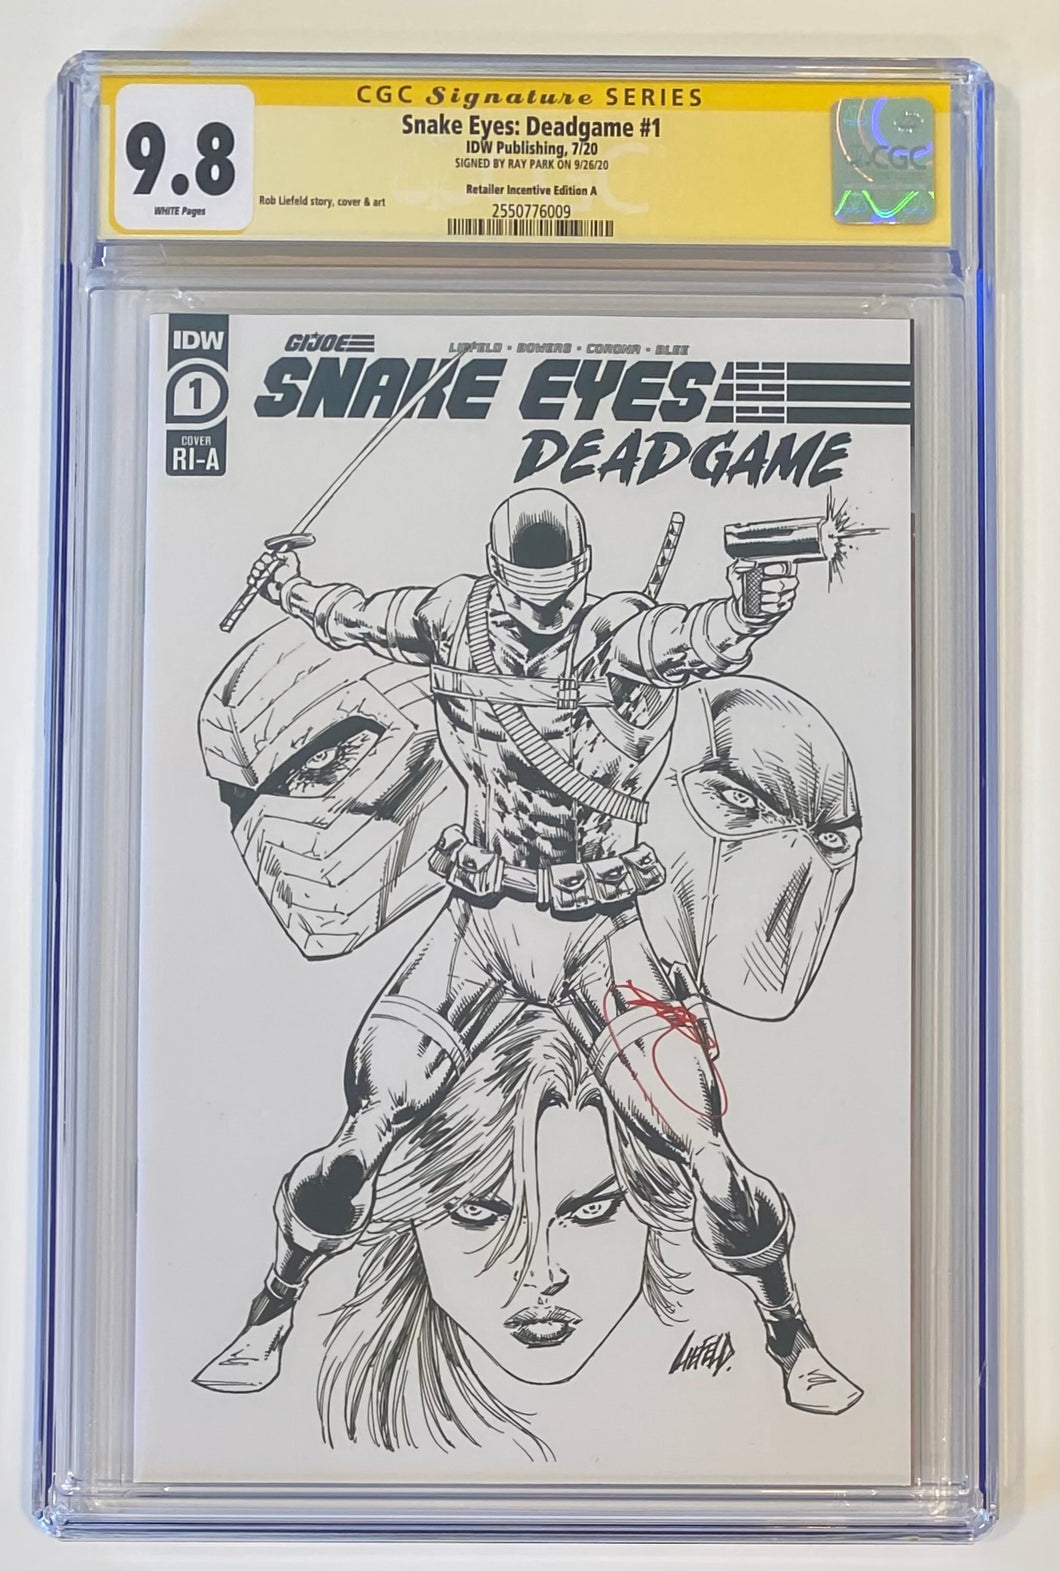 Snake Eyes Deadgame #1 b/w Liefeld Cover SIGNED by RAY PARK CGC 9.8